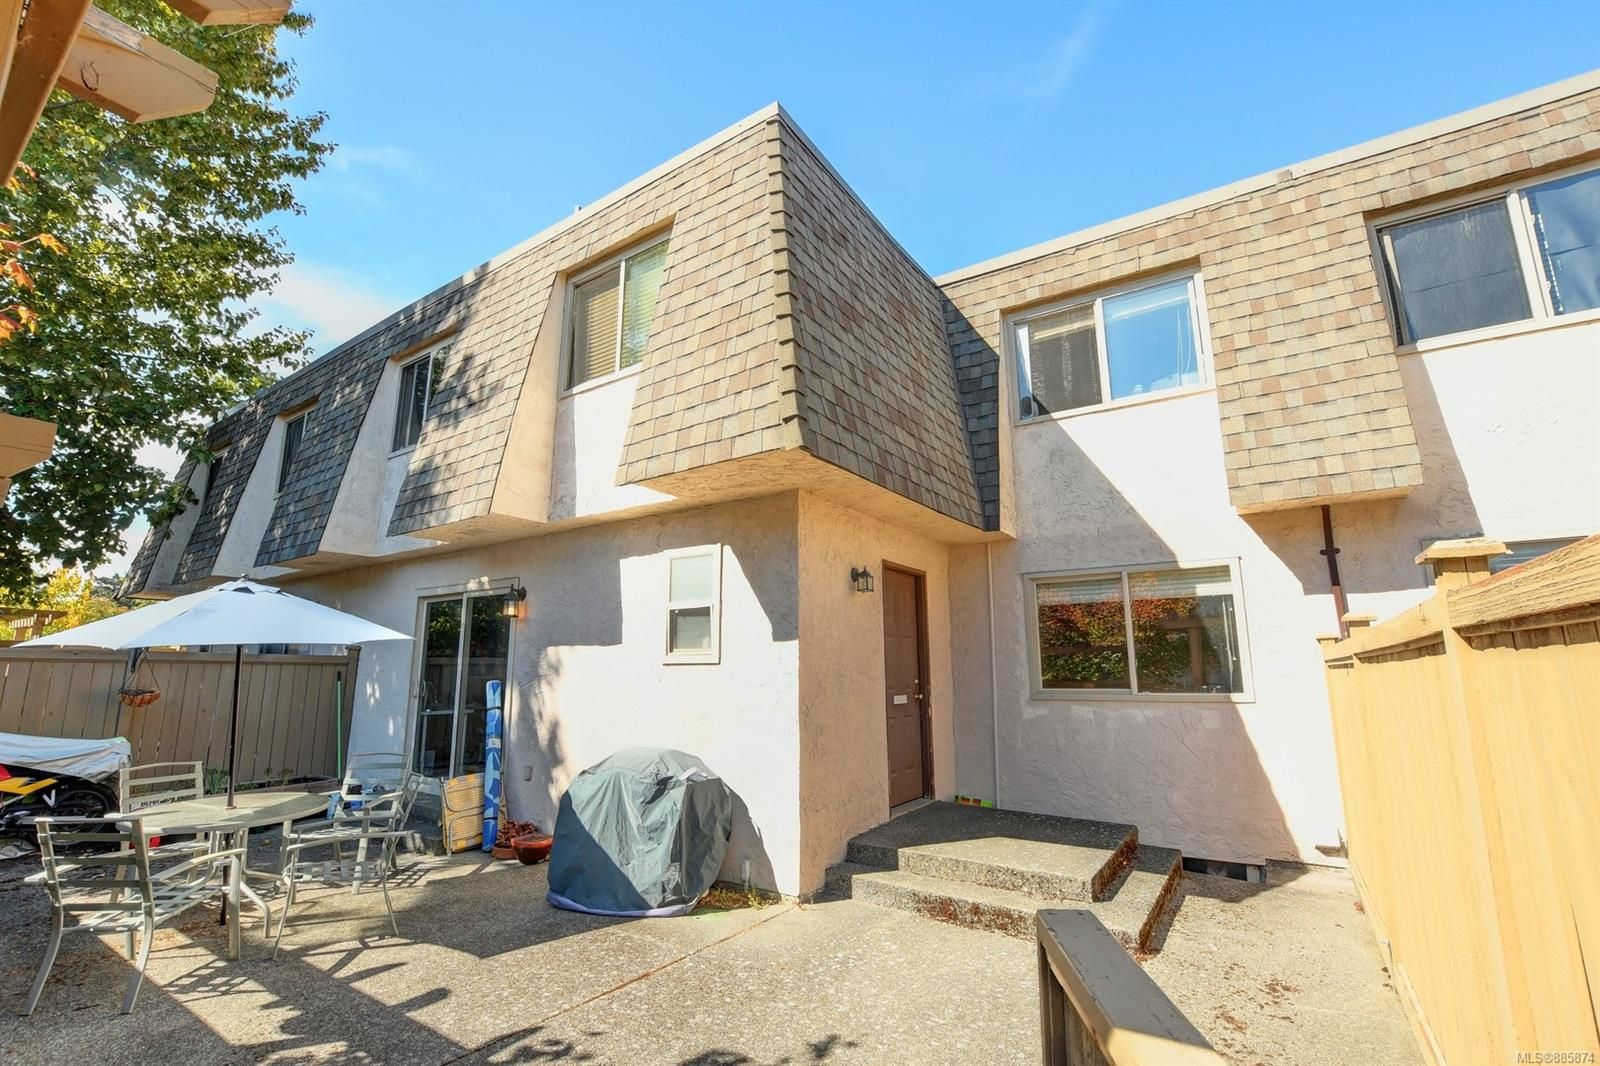 Main Photo: 29 4061 Larchwood Dr in : SE Lambrick Park Row/Townhouse for sale (Saanich East)  : MLS®# 885874